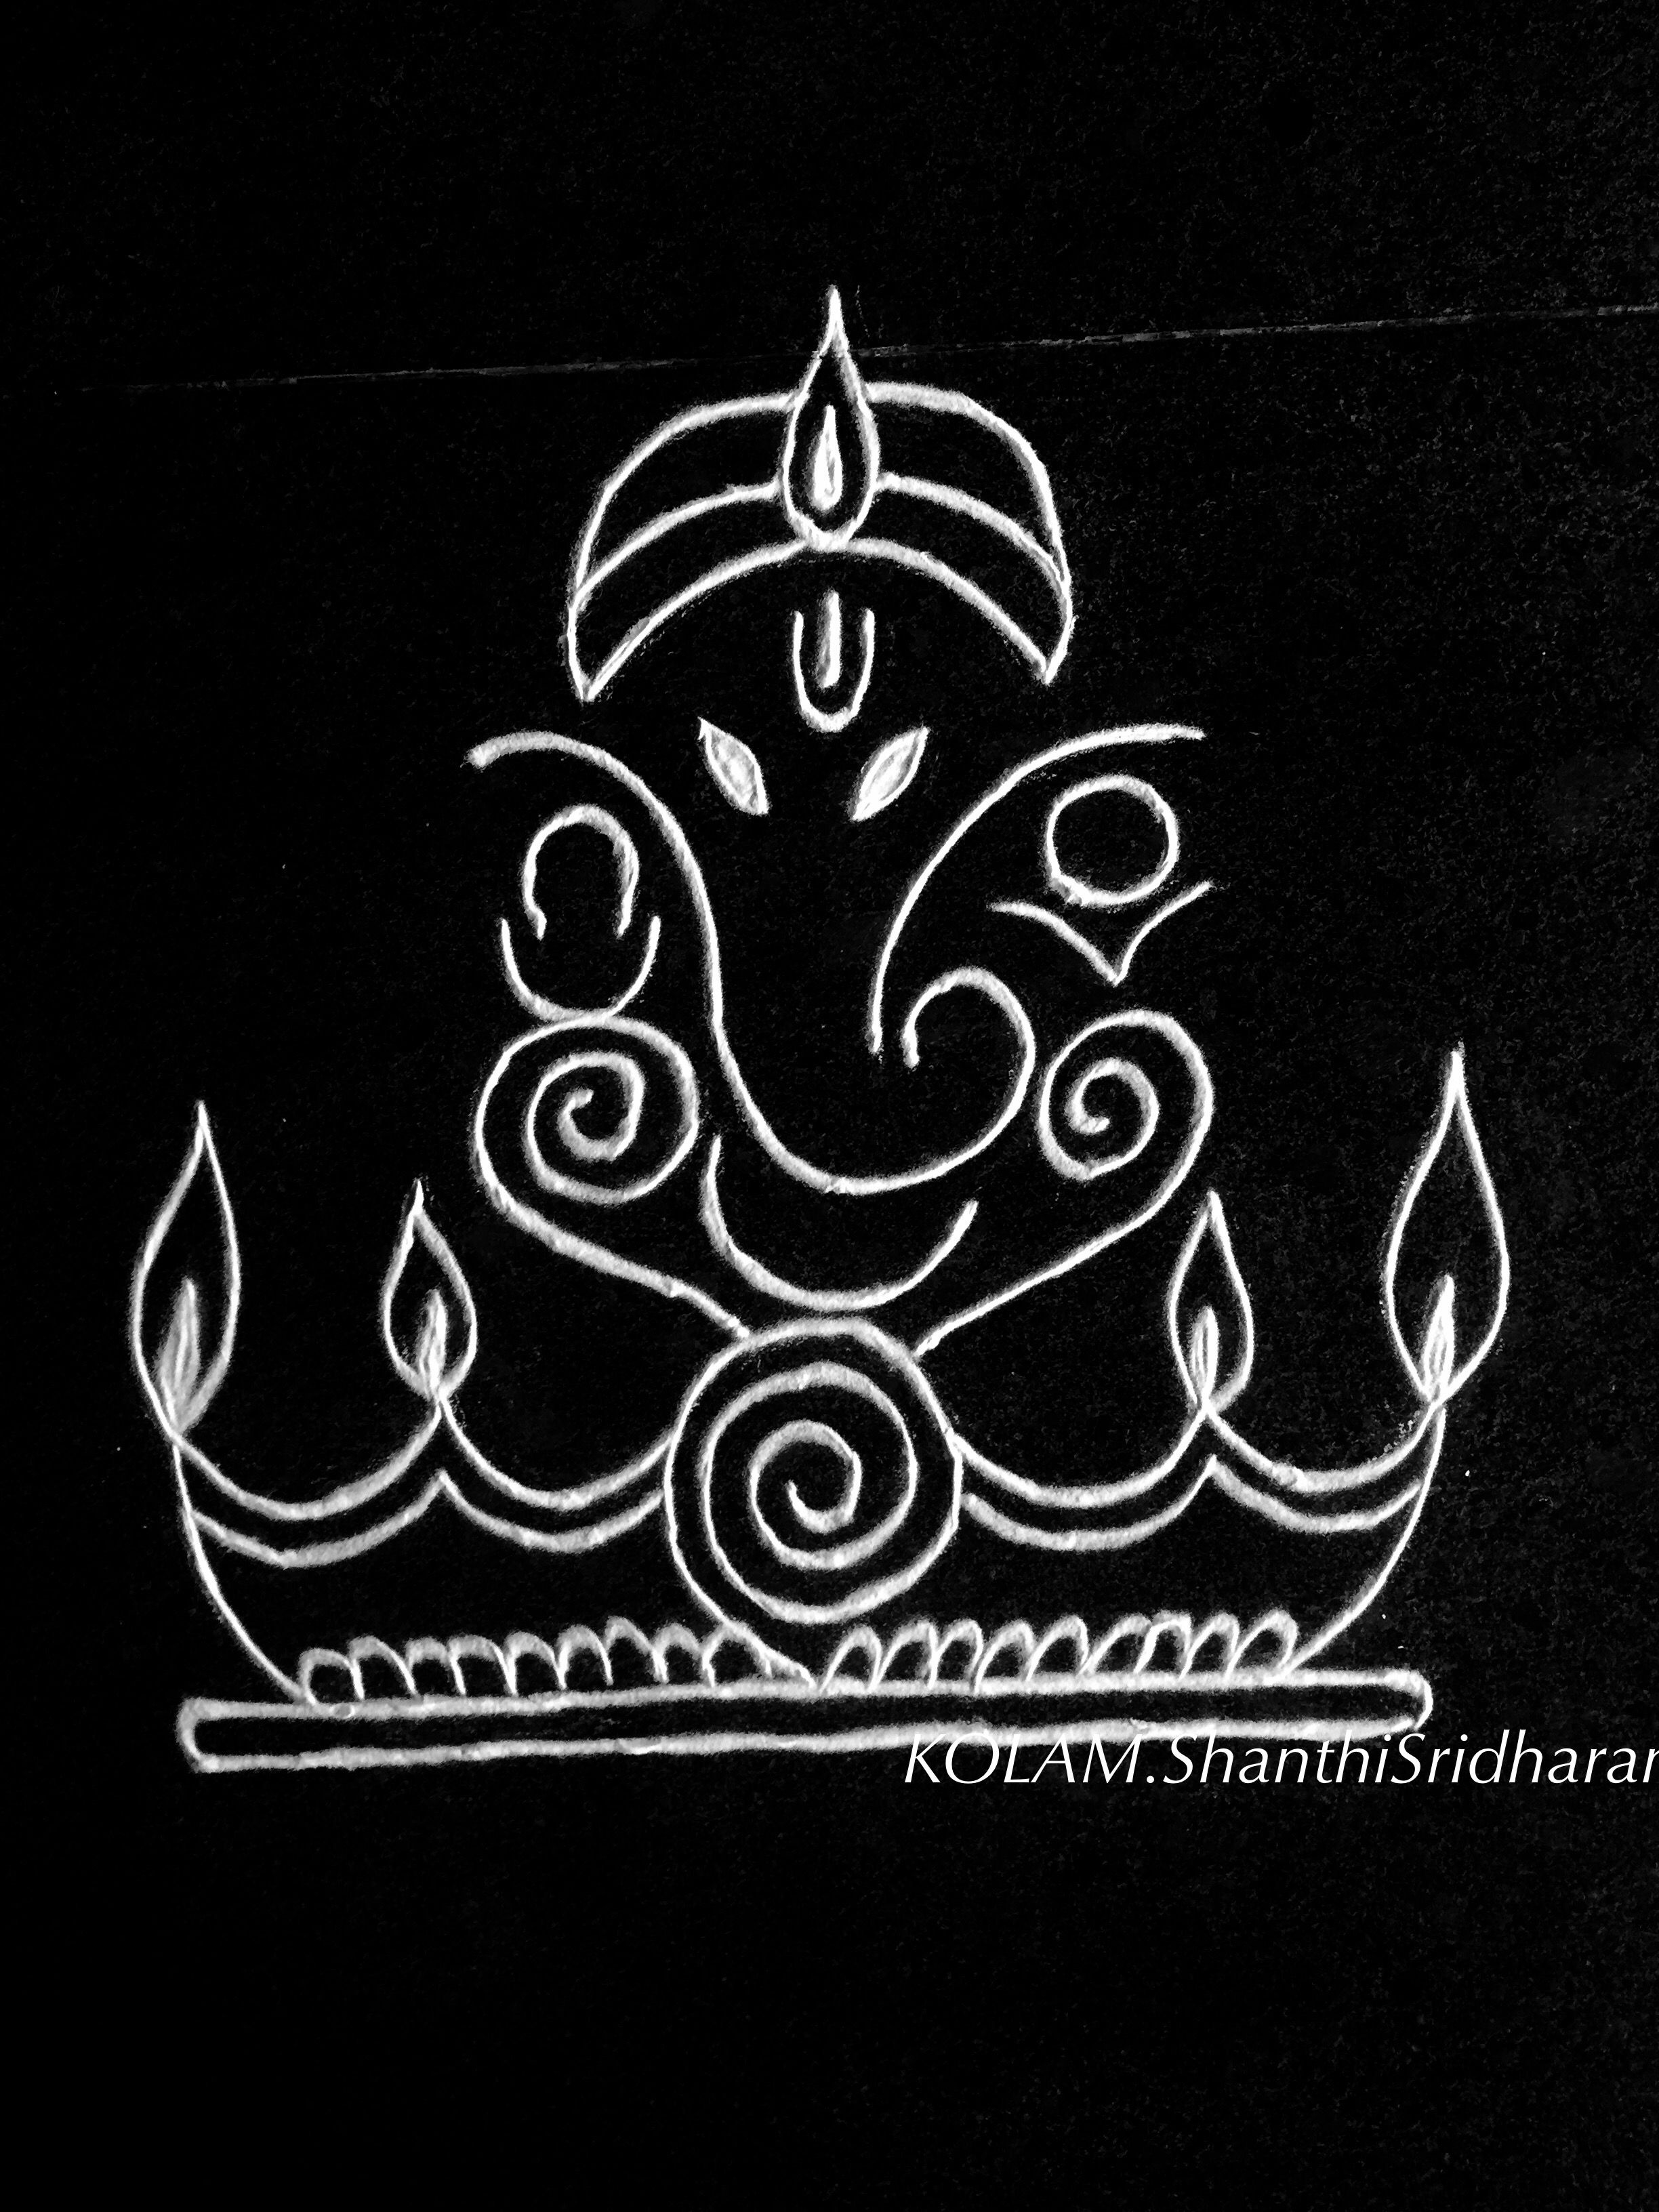 Pin by Shanthi Sridharan.KOLAM on Black and white Kolam ...